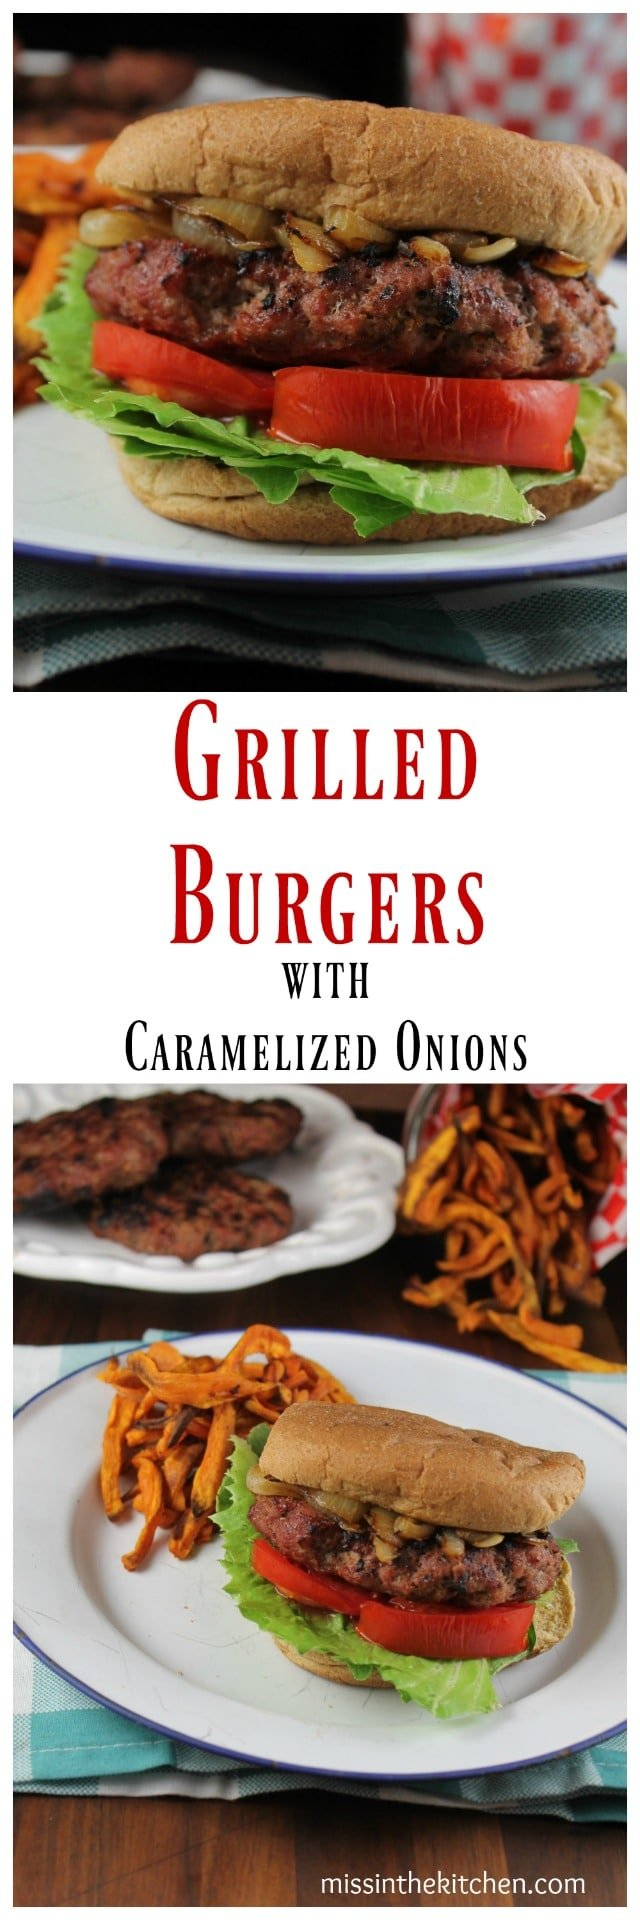 Grilled Burgers with Caramelized Onions Recipe ~ Healthy Dinner idea from TCHS Cookbook ~ MissintheKitchen.com #ad